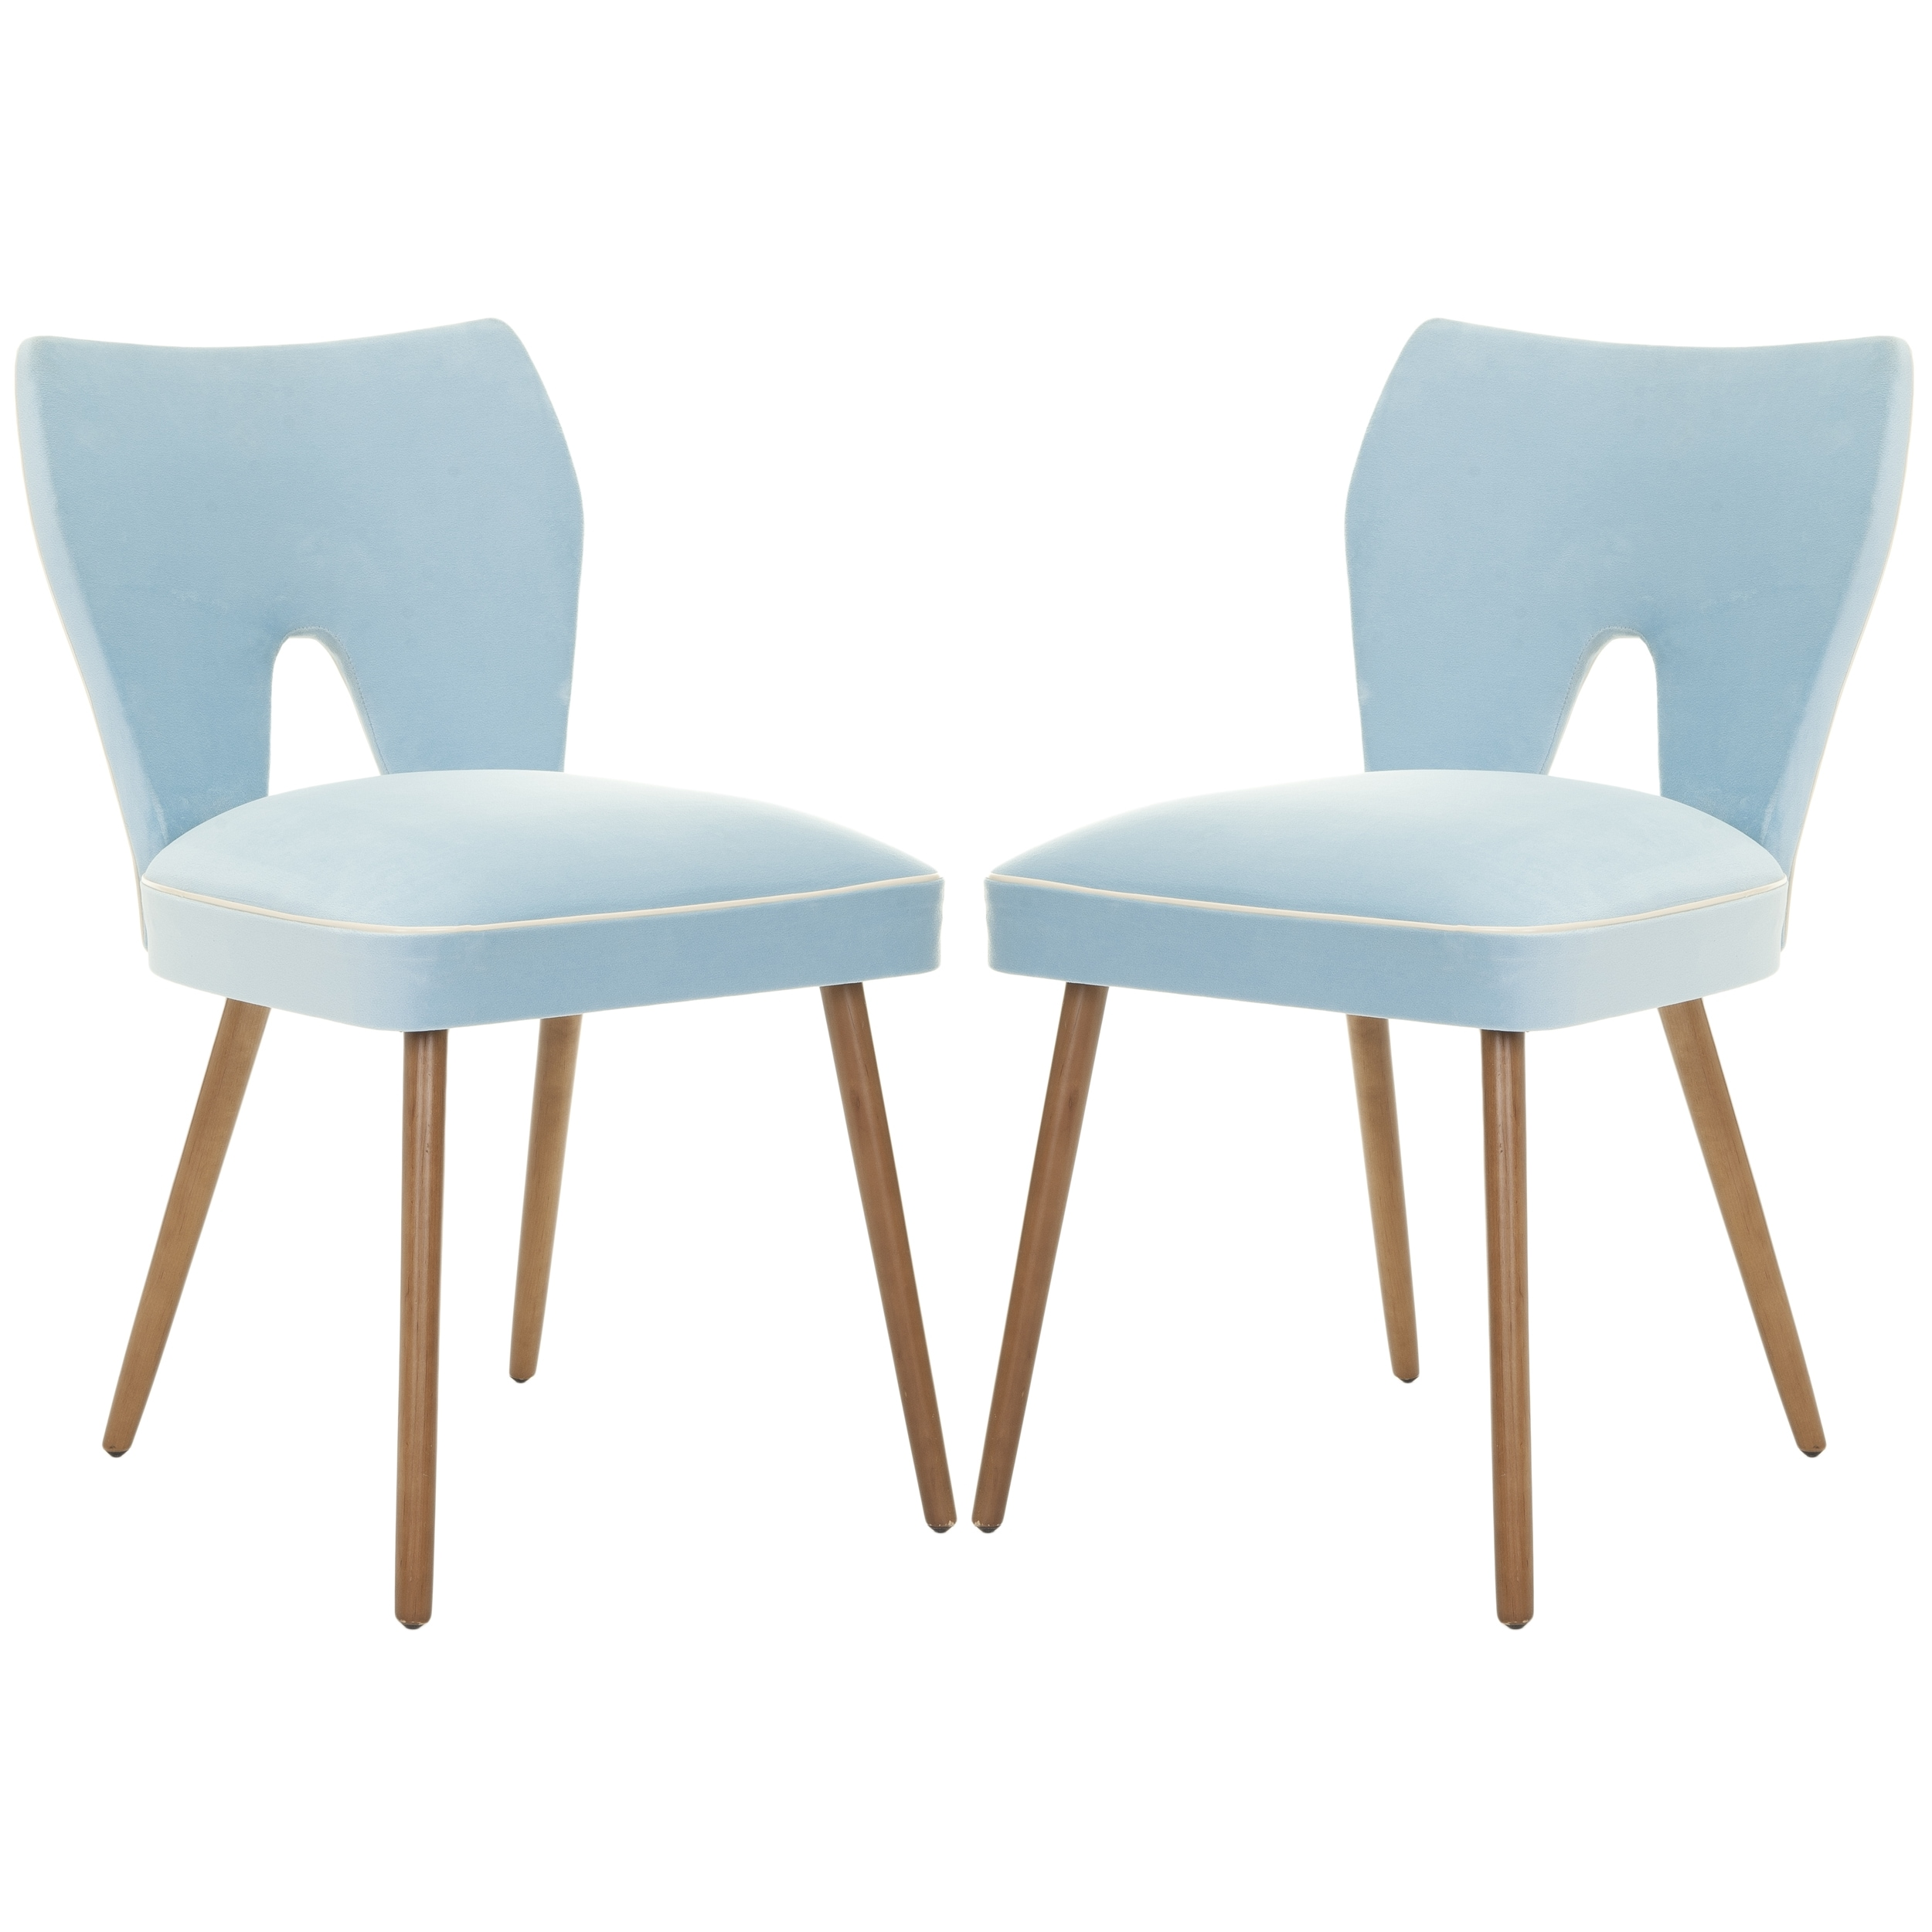 Safavieh Retro Blue Velvet Blend Side Chair (Set of 2)